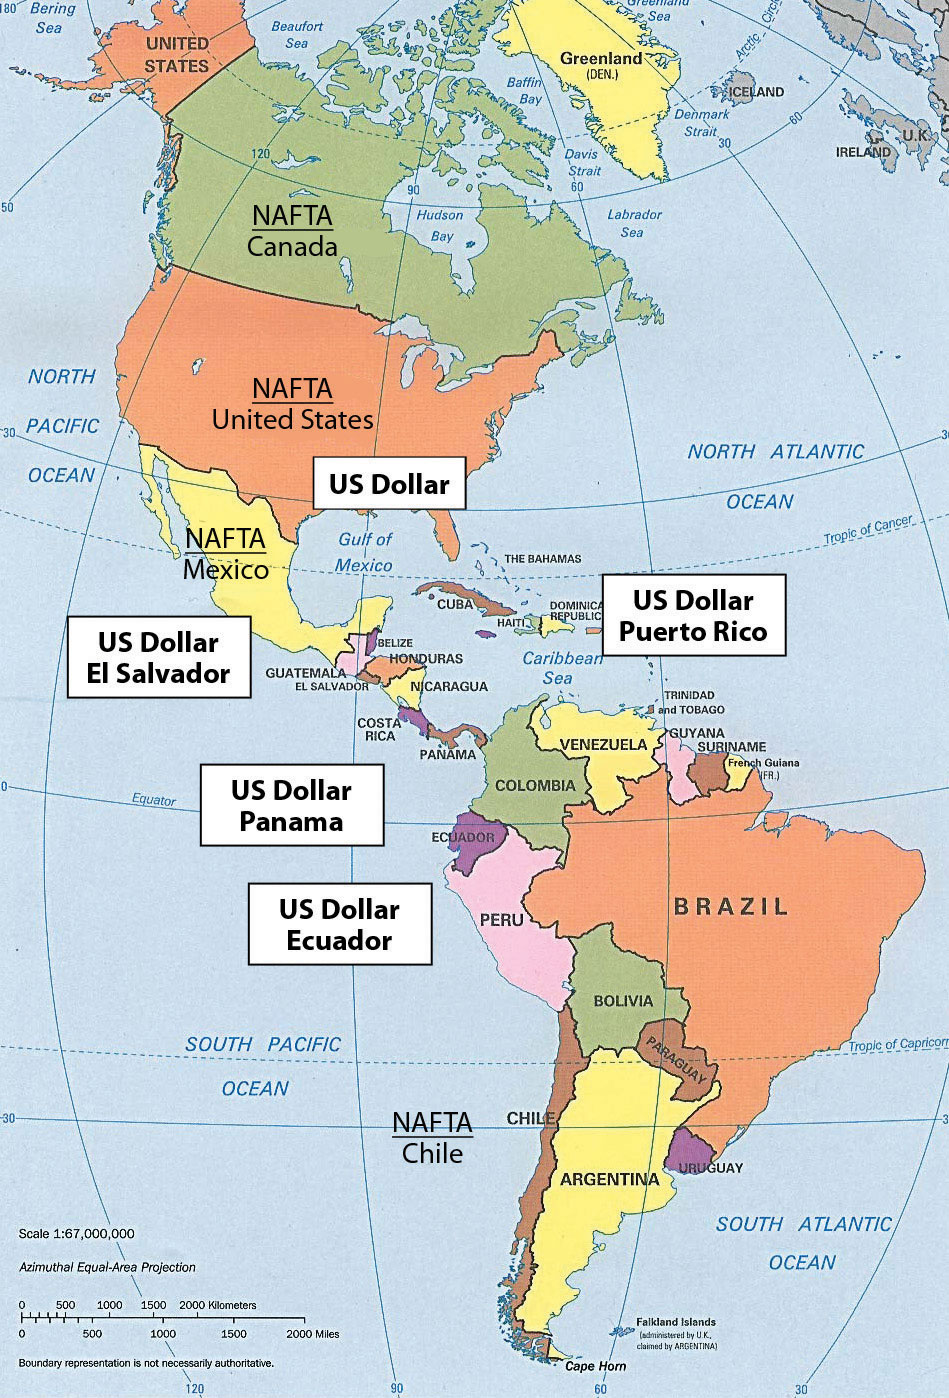 South America on labeled map of pennsylvania, labeled map of united kingdom, labeled map of the u.s, labeled map of tobago, labeled map of nigeria, labeled map of the british isles, labeled map of bodies of water, labeled map of fiji islands, labeled map of switzerland, labeled map of trinidad, labeled map of northern europe, labeled map of the caribbean islands, labeled map of iran, labeled map of new caledonia, labeled map of amazon river, labeled map of indochina, labeled map of western united states, labeled map of syria, labeled map of ussr, labeled map of iraq,